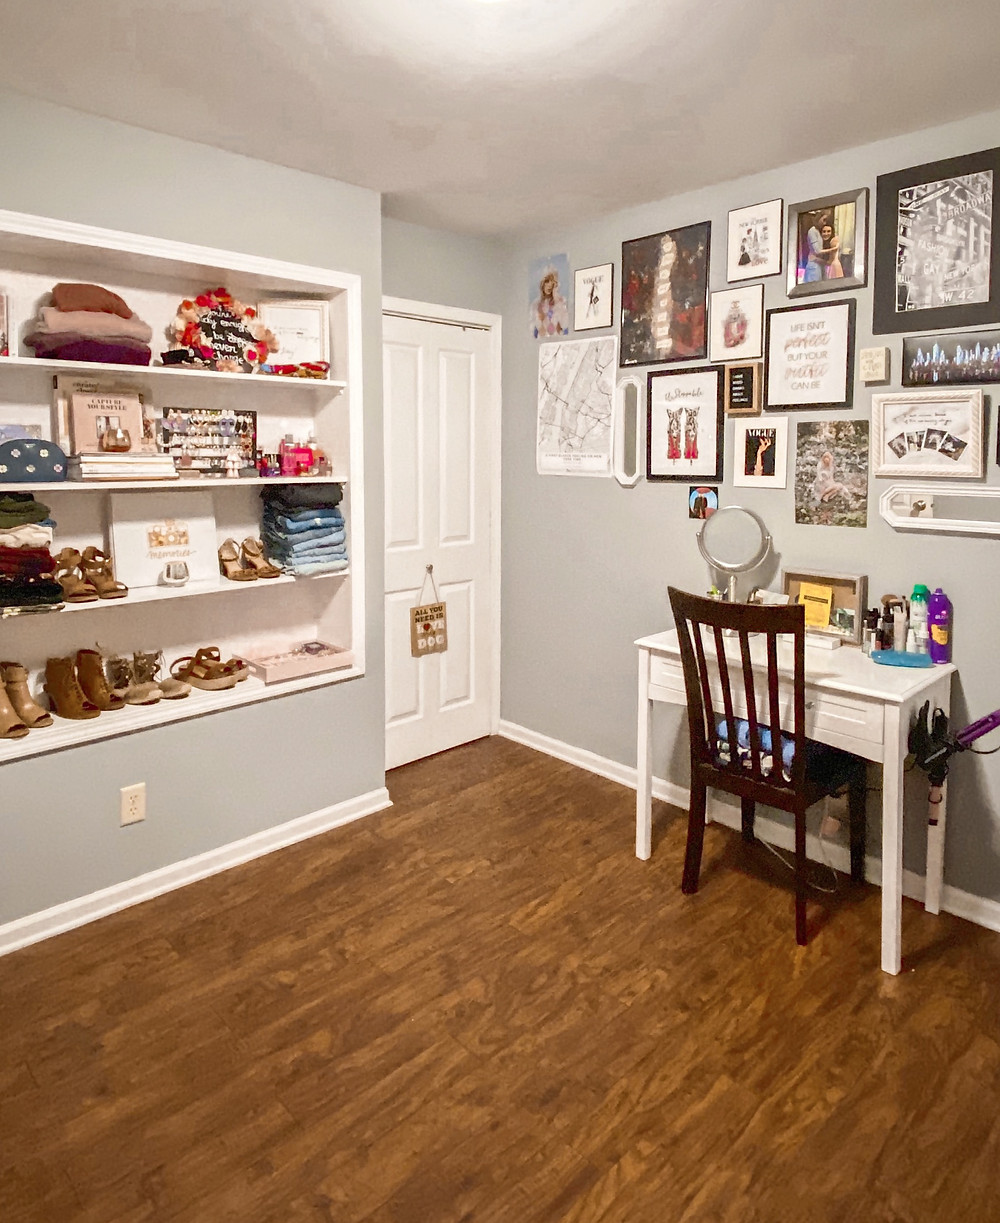 The Bleached Curl closet, gallery wall